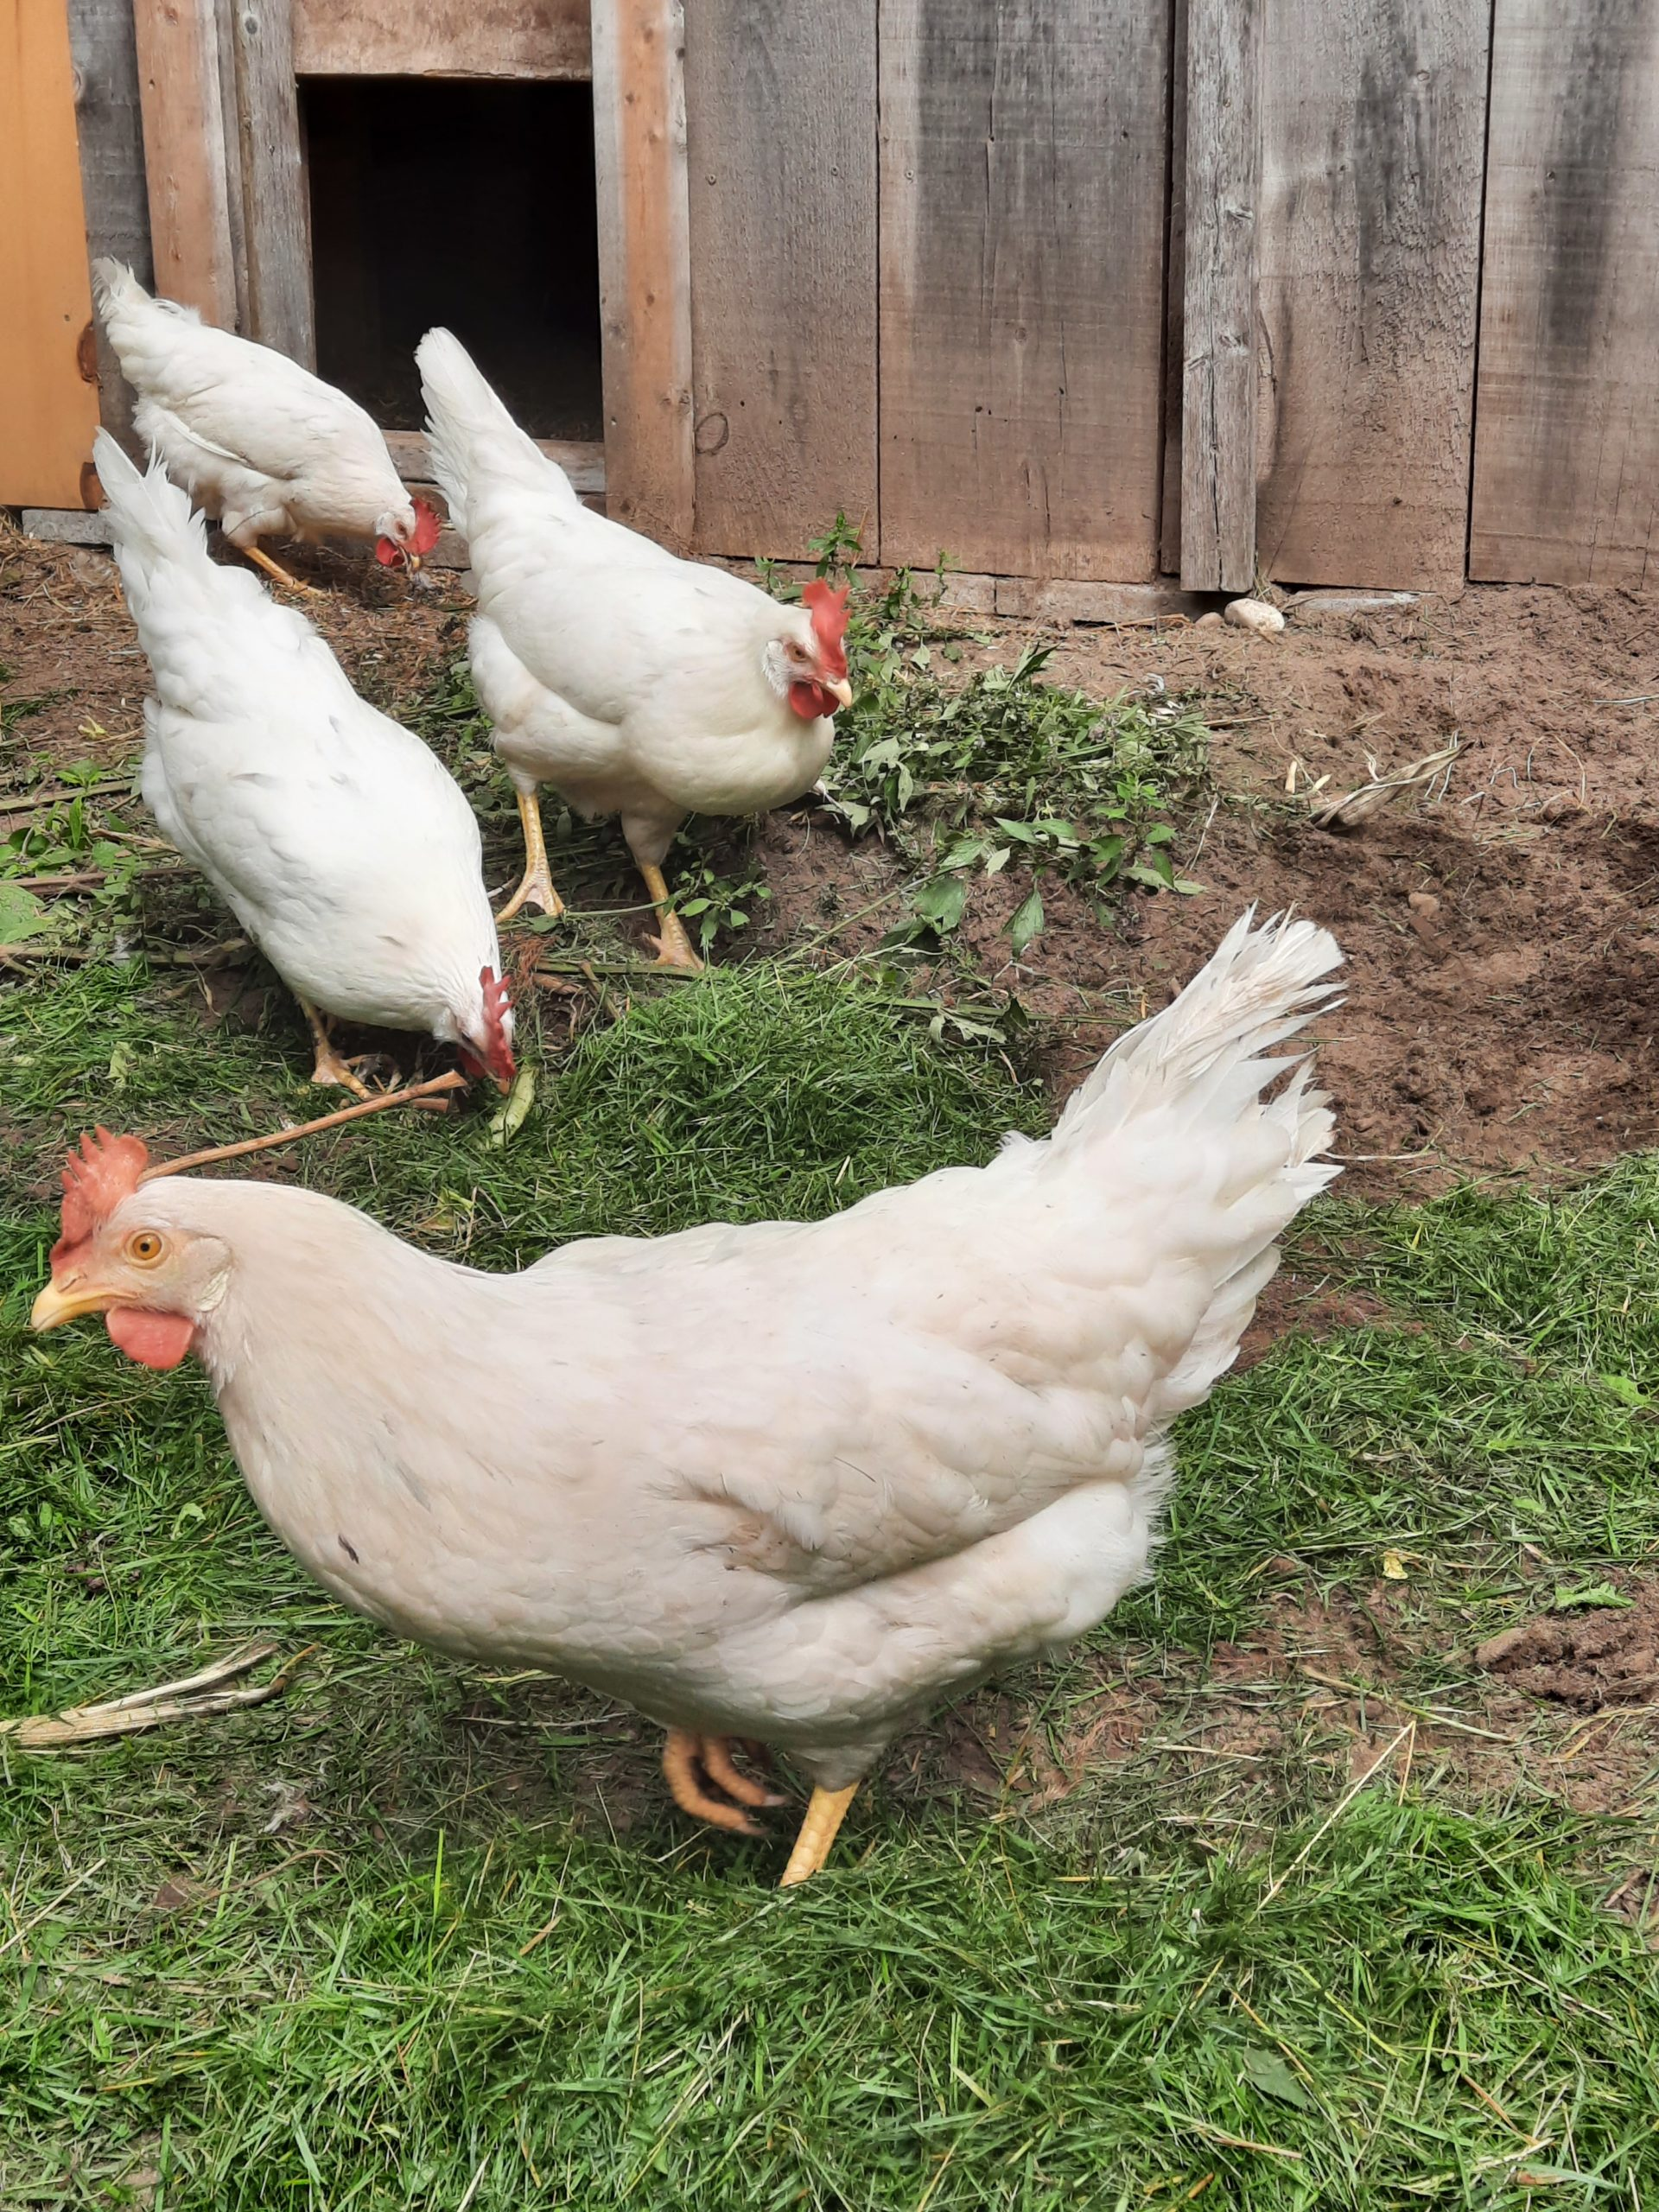 Members laying hens out in their yard